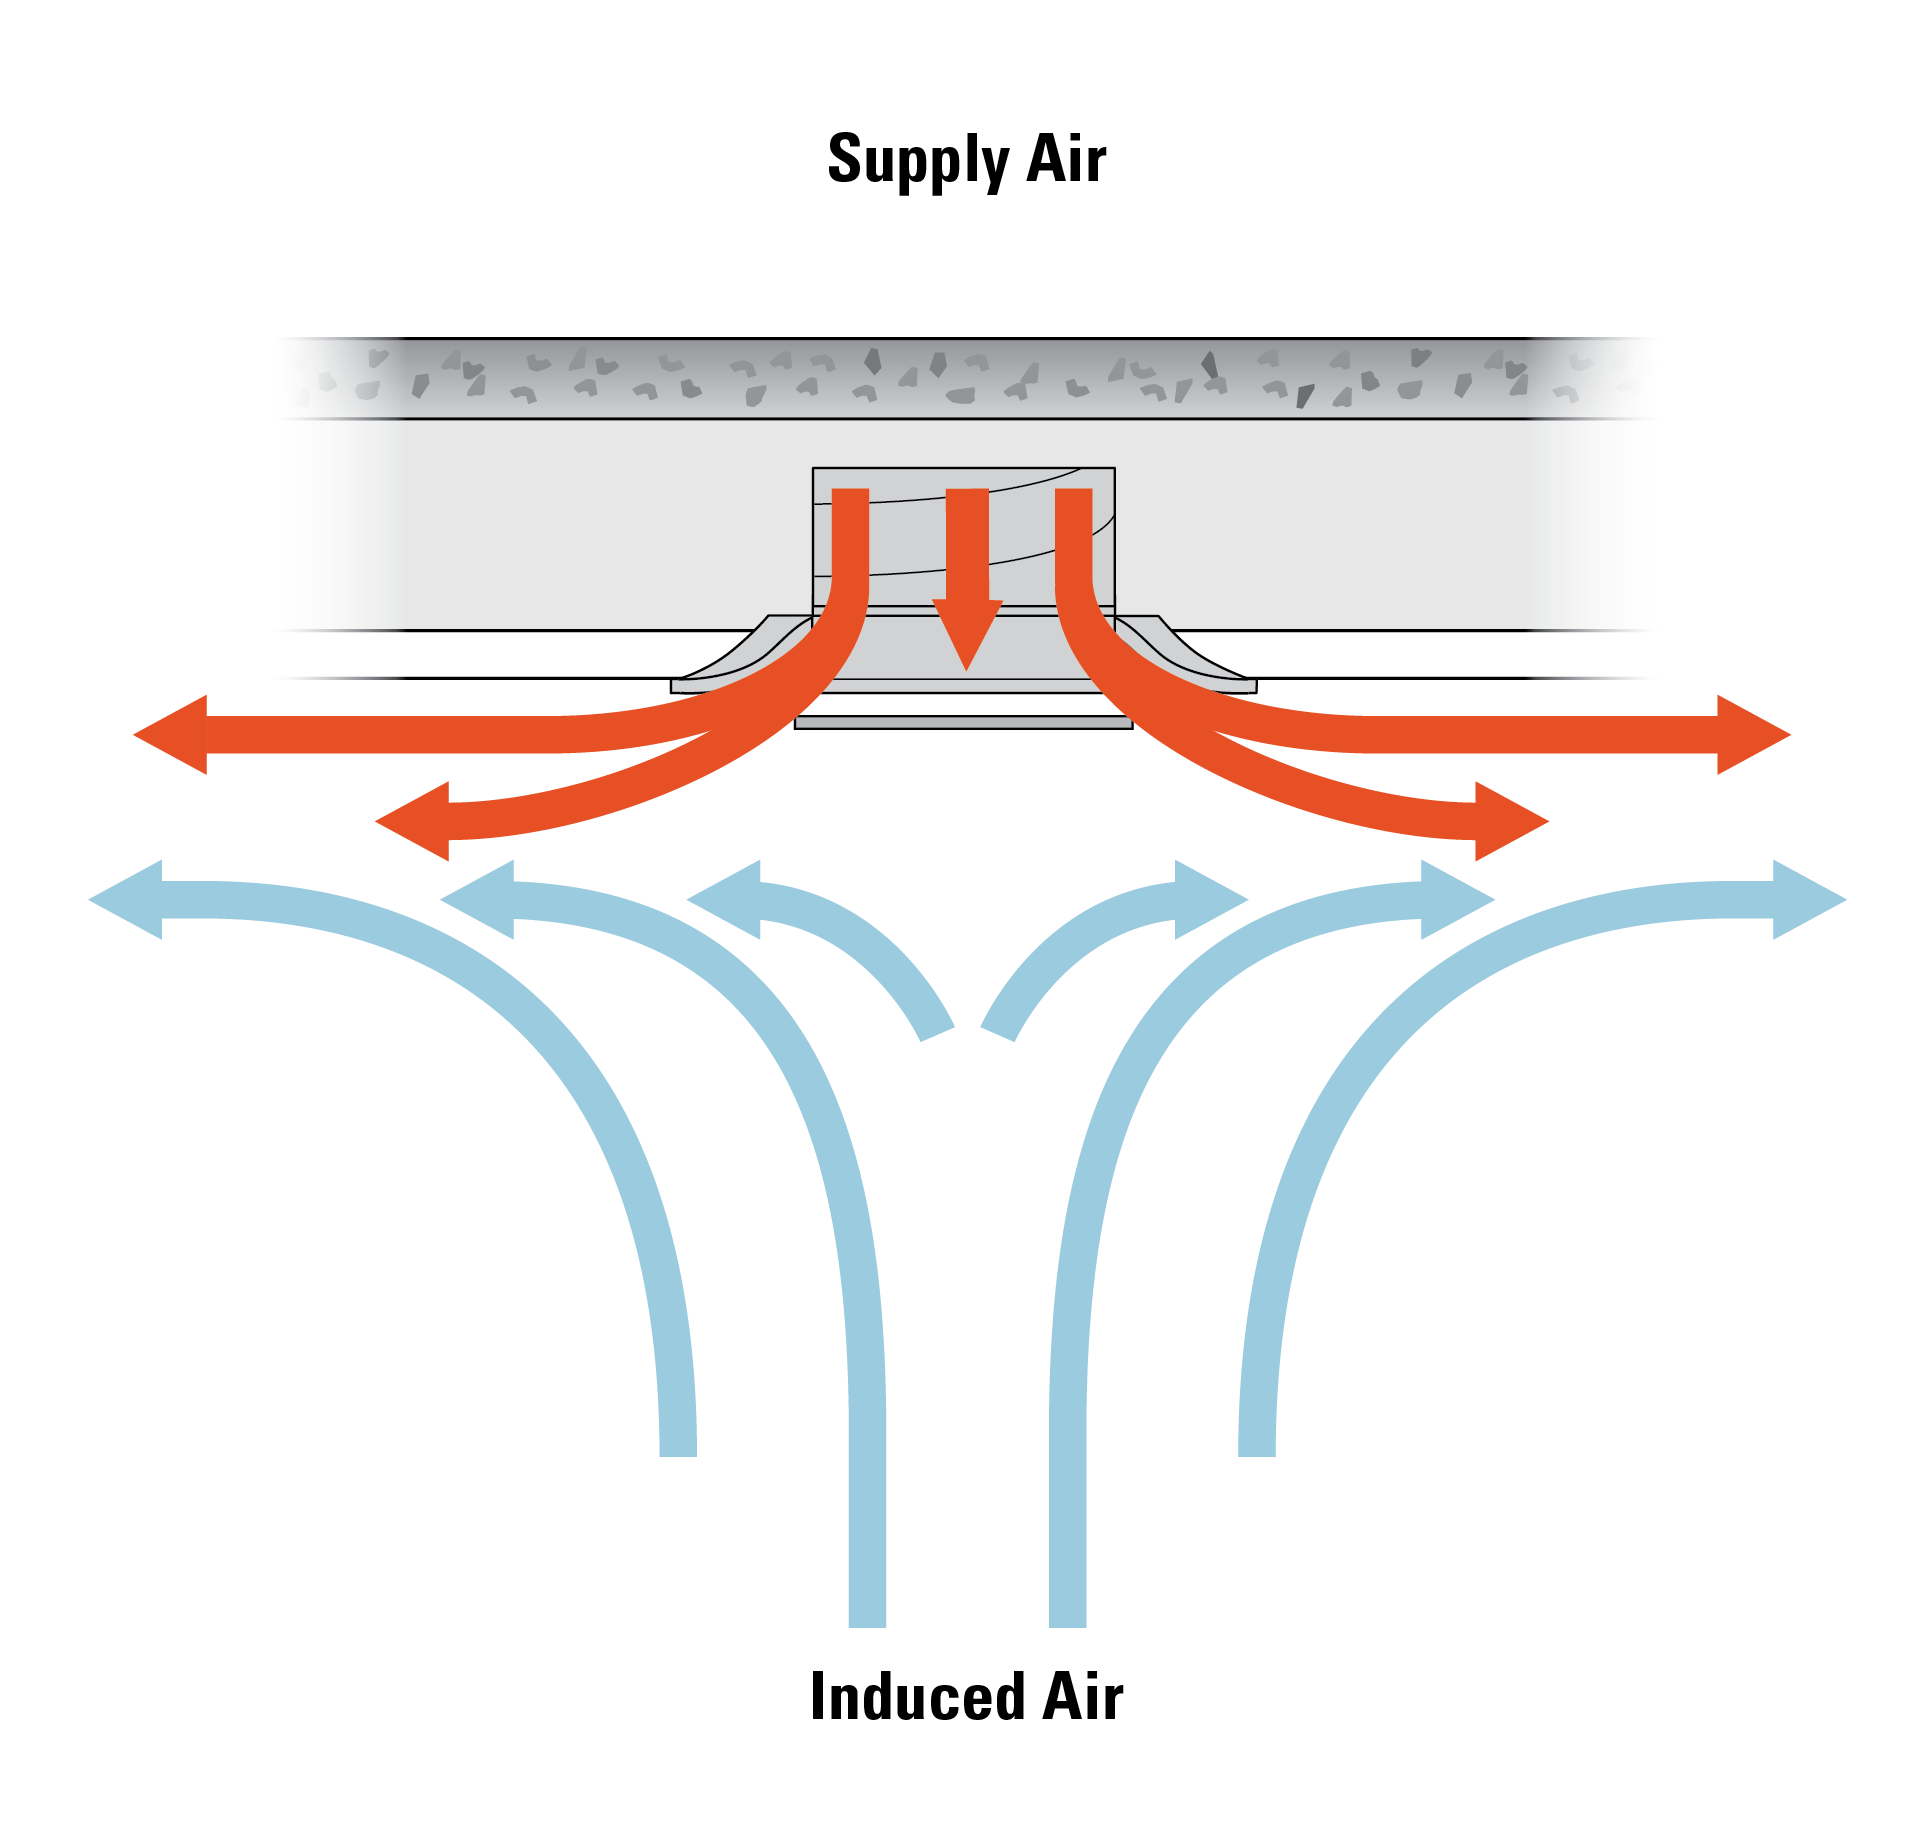 Air entrained along the discharge path of diffuser